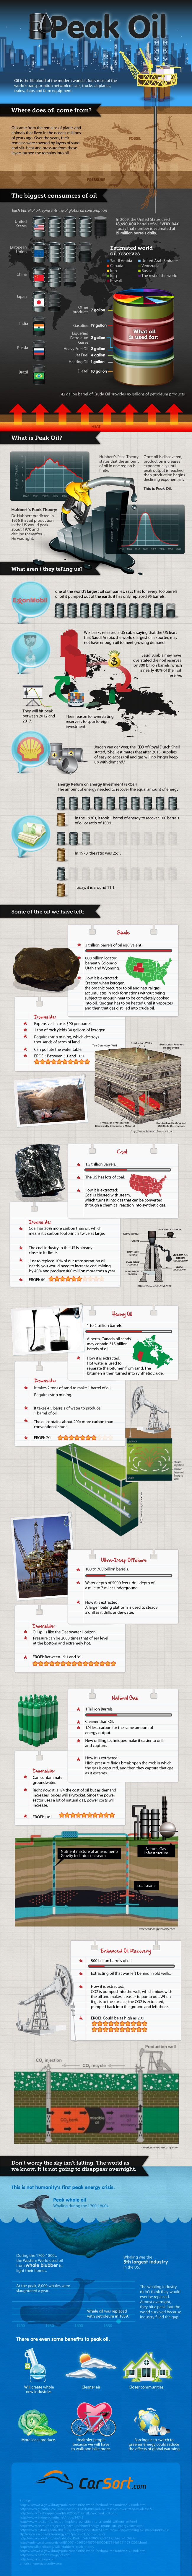 Infographic Explains How Peak Oil Cycle Affects Us